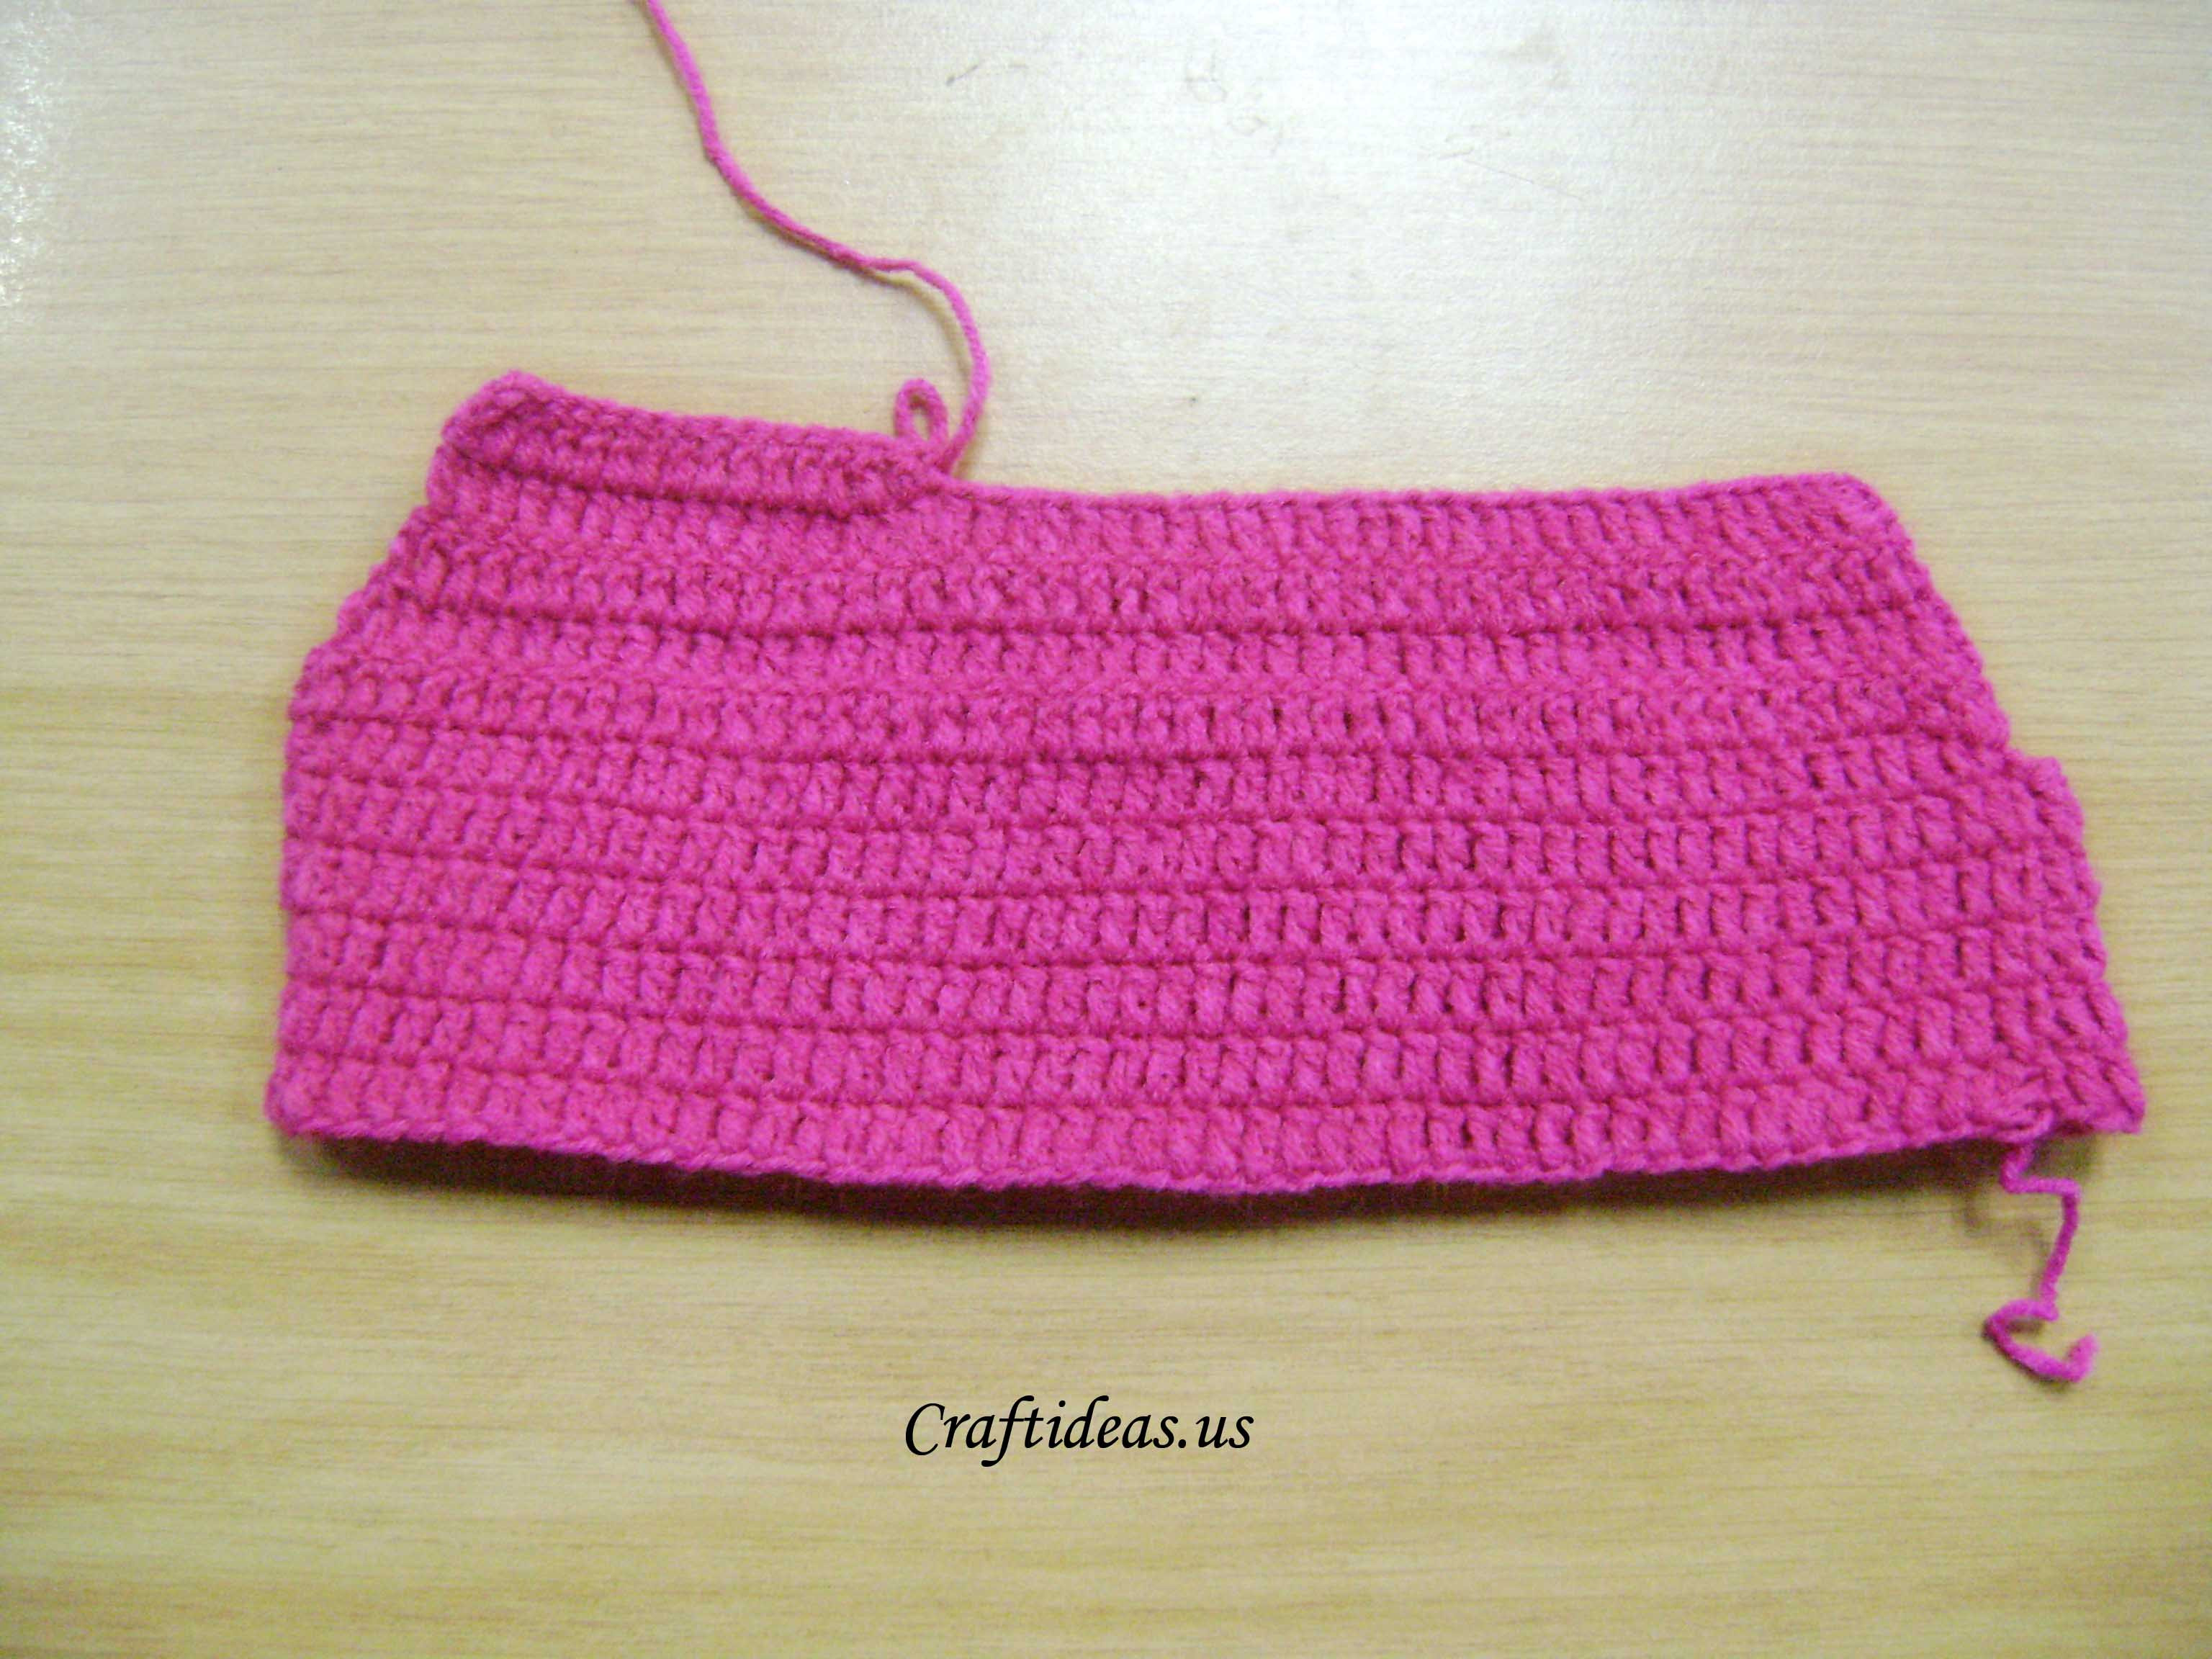 Awesome Crochet Ideas Crochet Sites Of Incredible 47 Images Crochet Sites